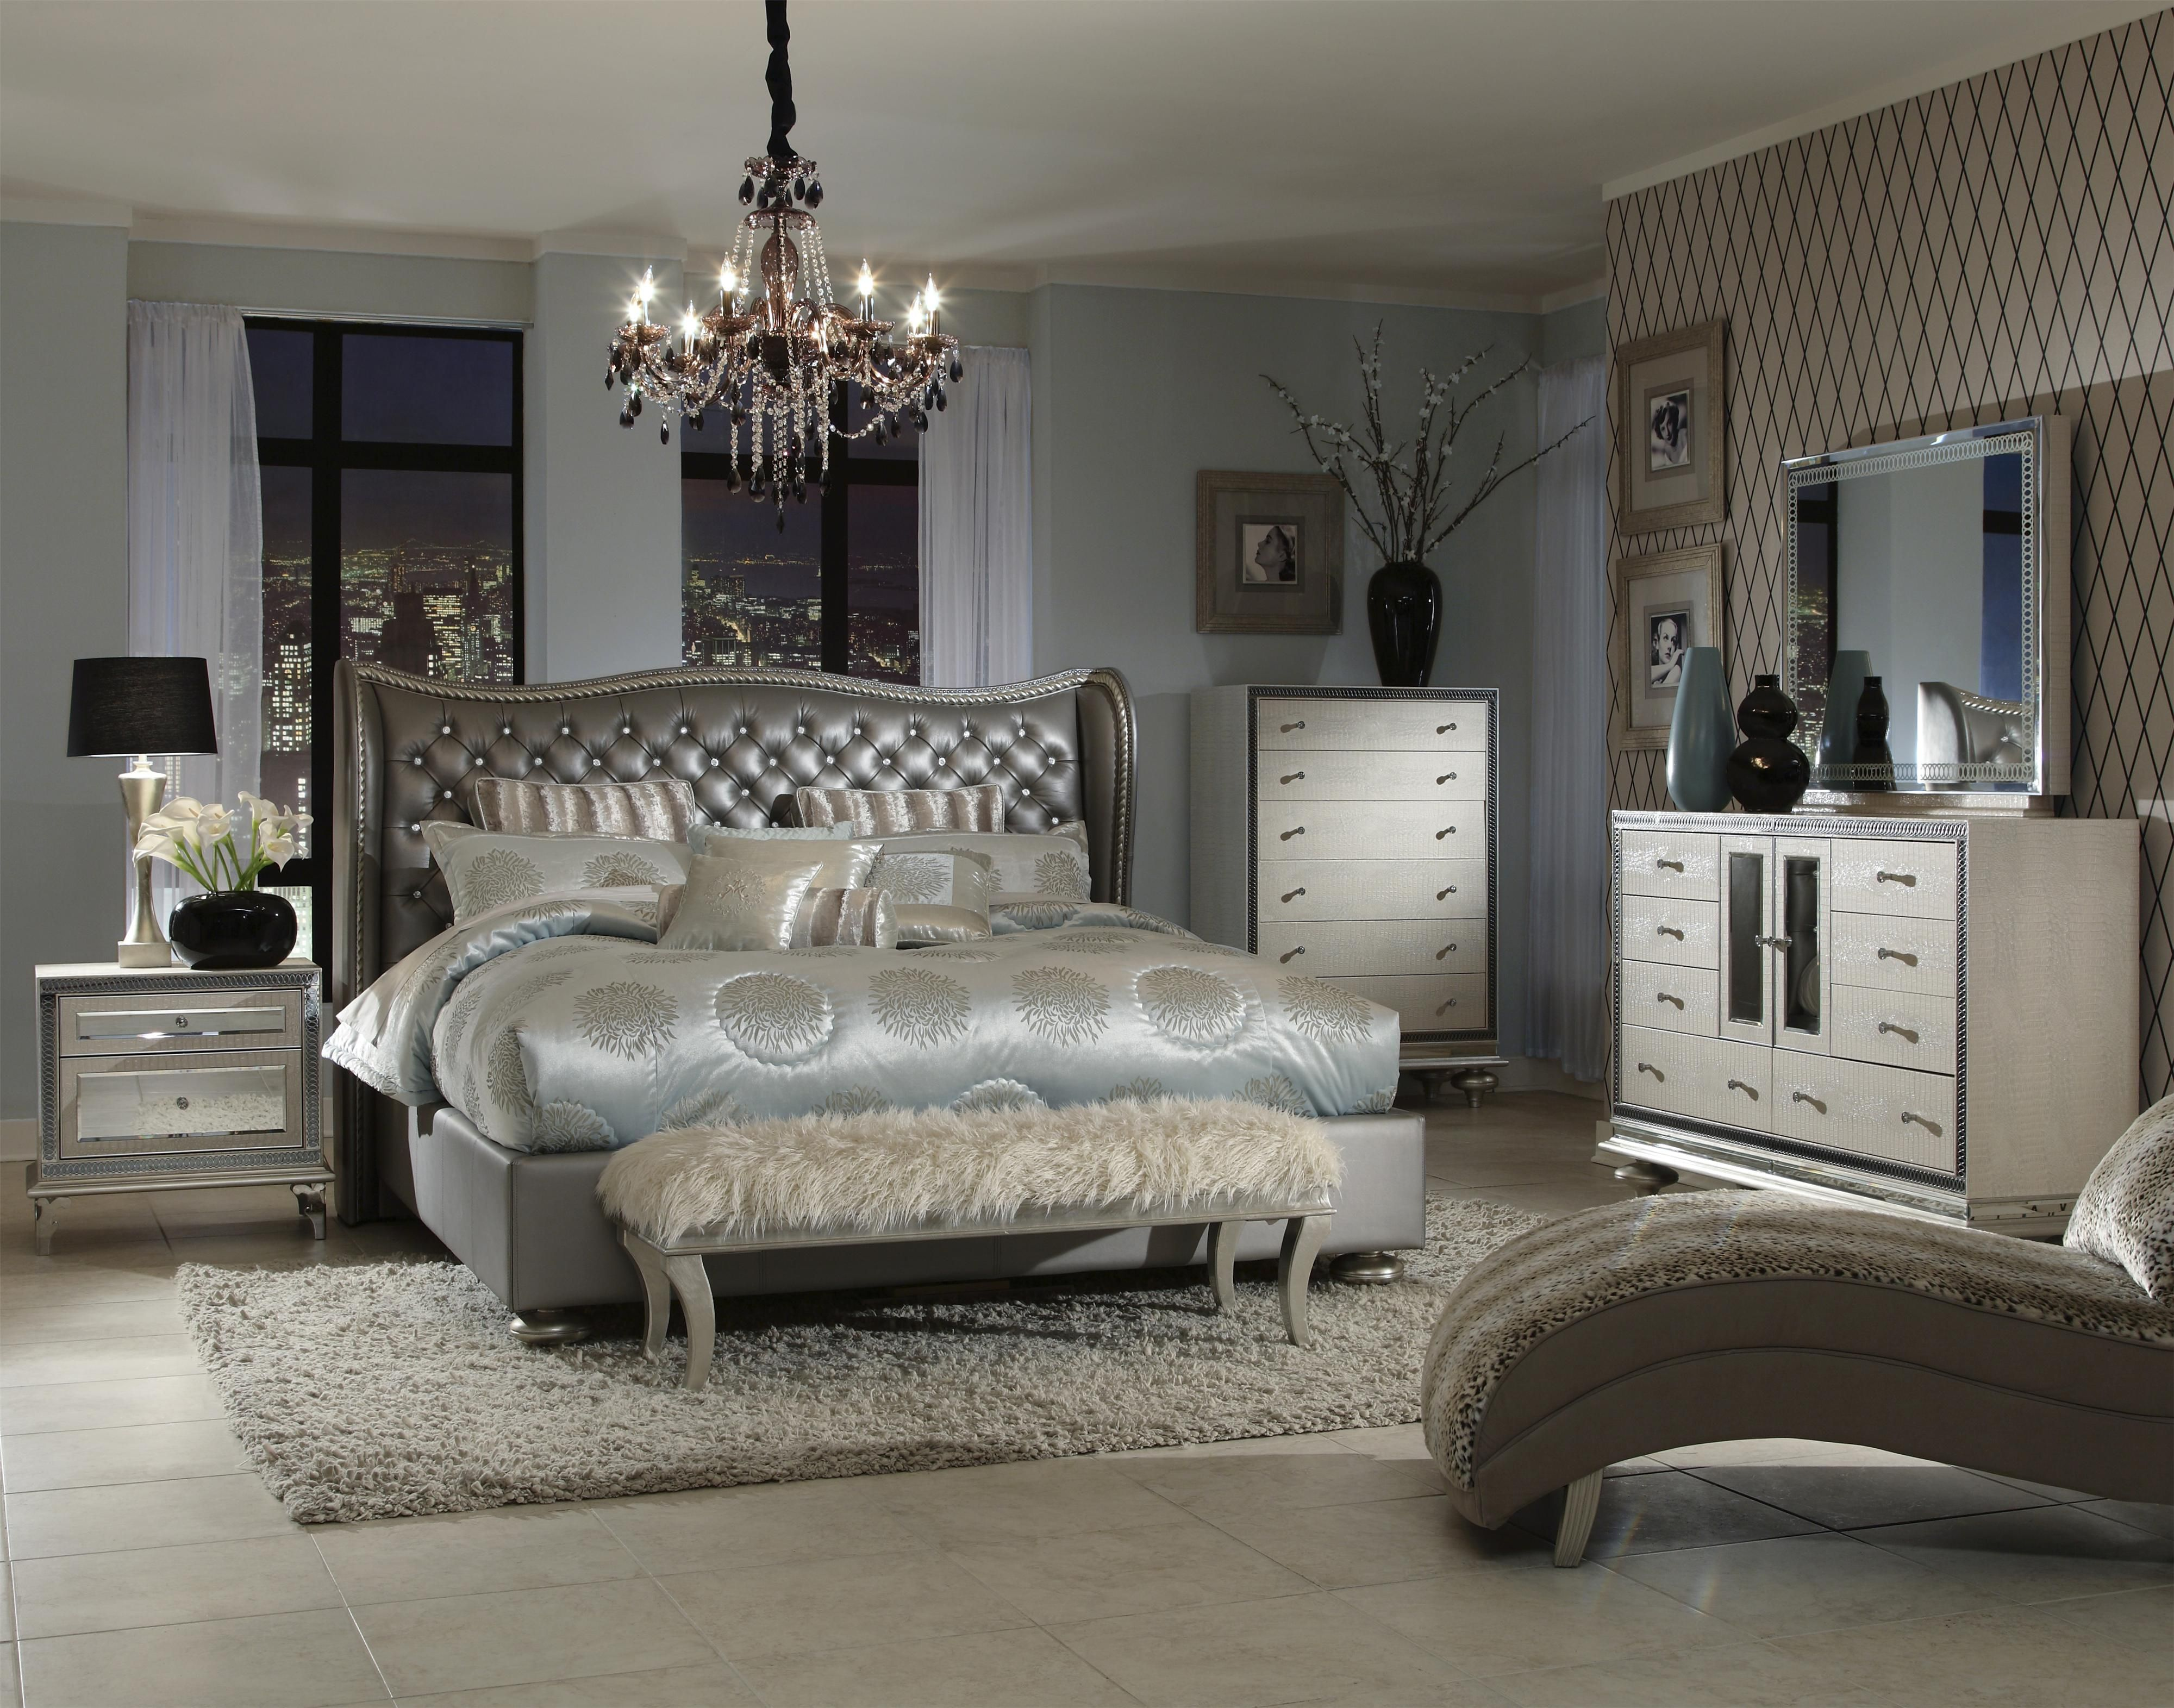 Raymour Flanigan Bedroom Furniture Raymour And Flanigan Bedroom Set Pictures Gallery A1houstoncom